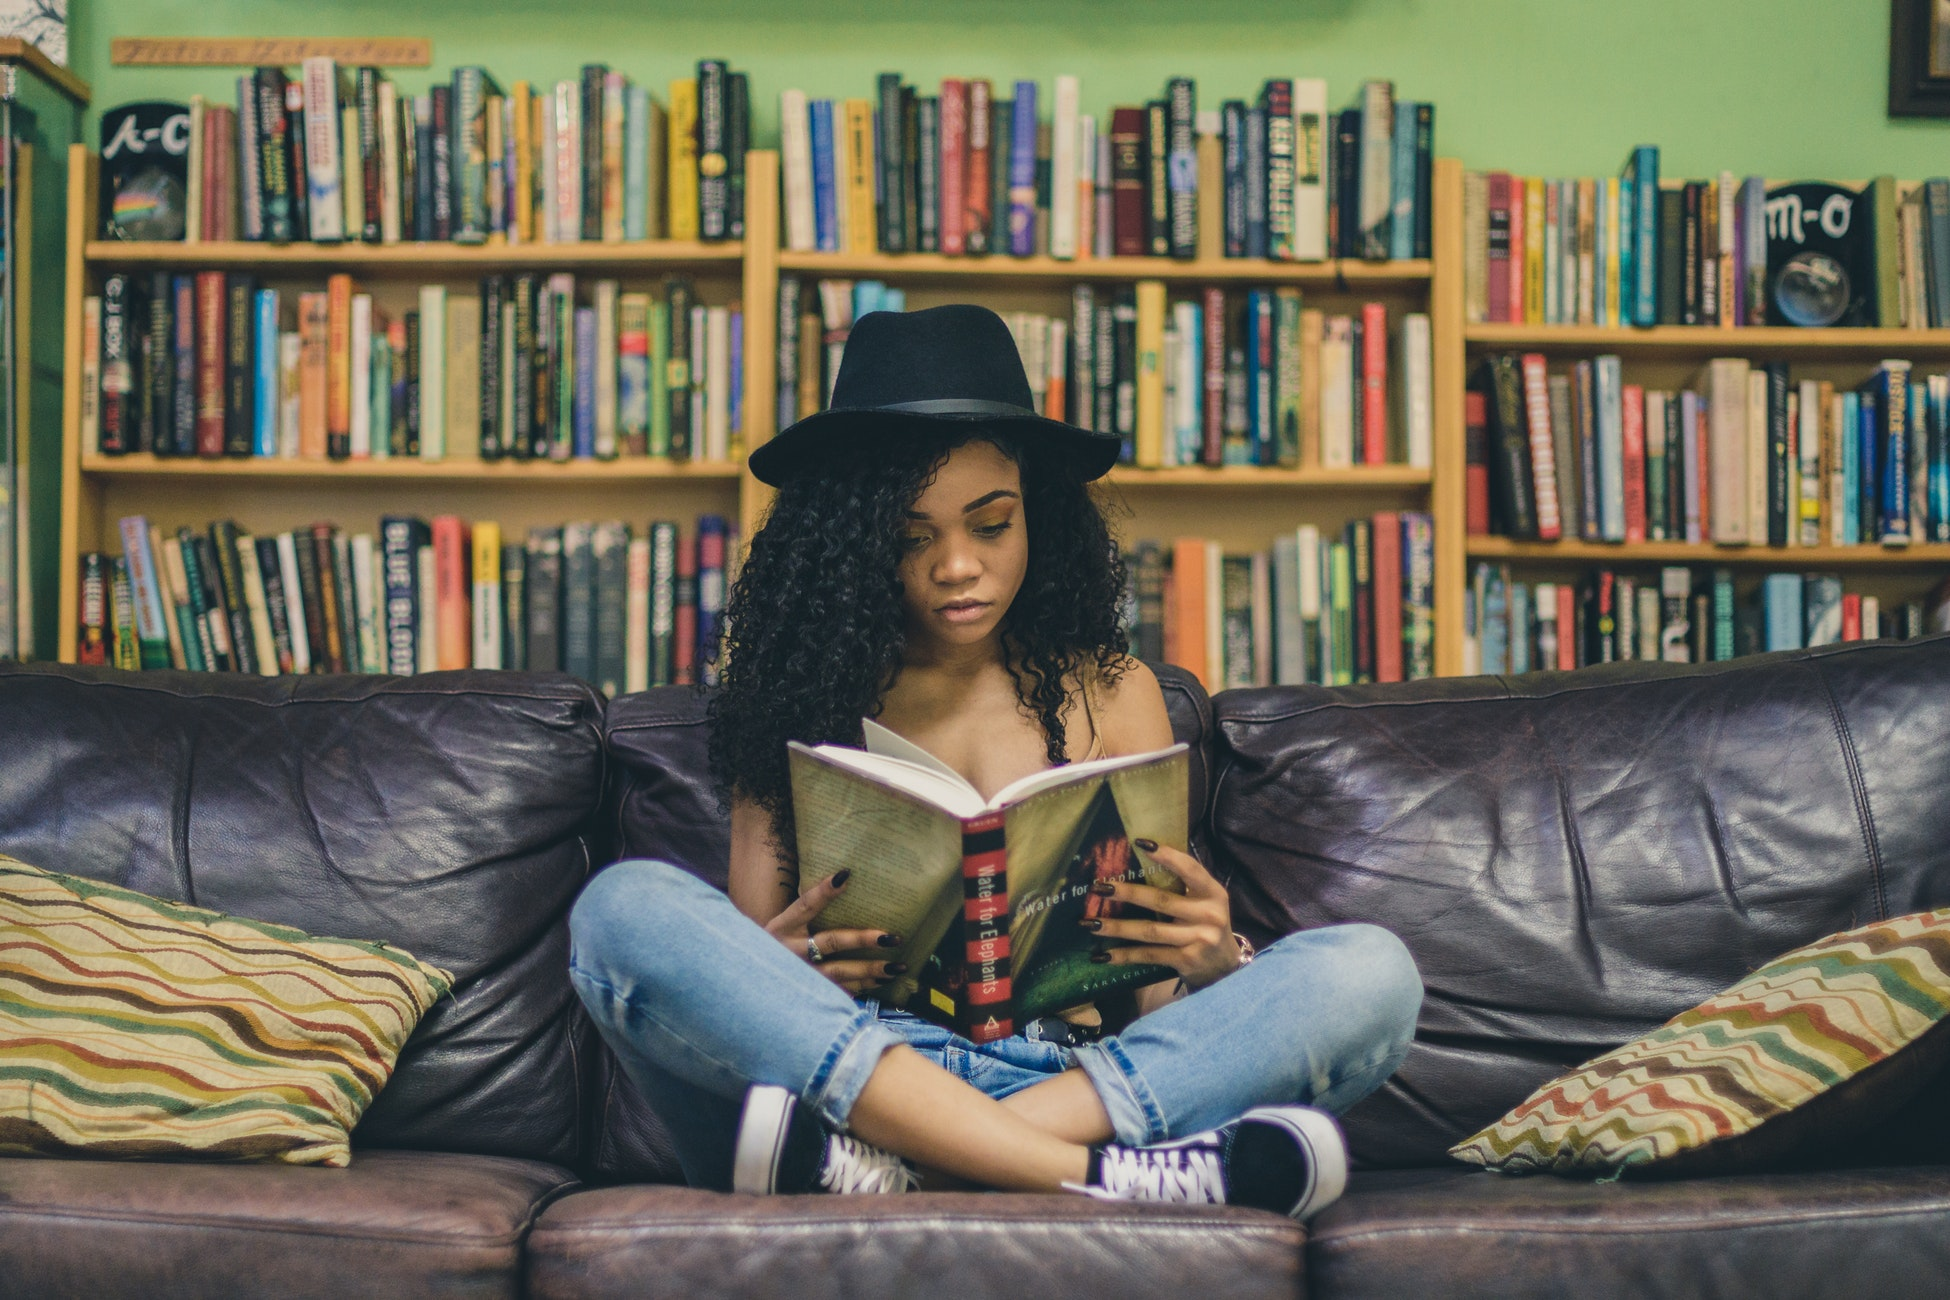 5 Books that Change Your Perspective on Life - Girl Reading in a Library